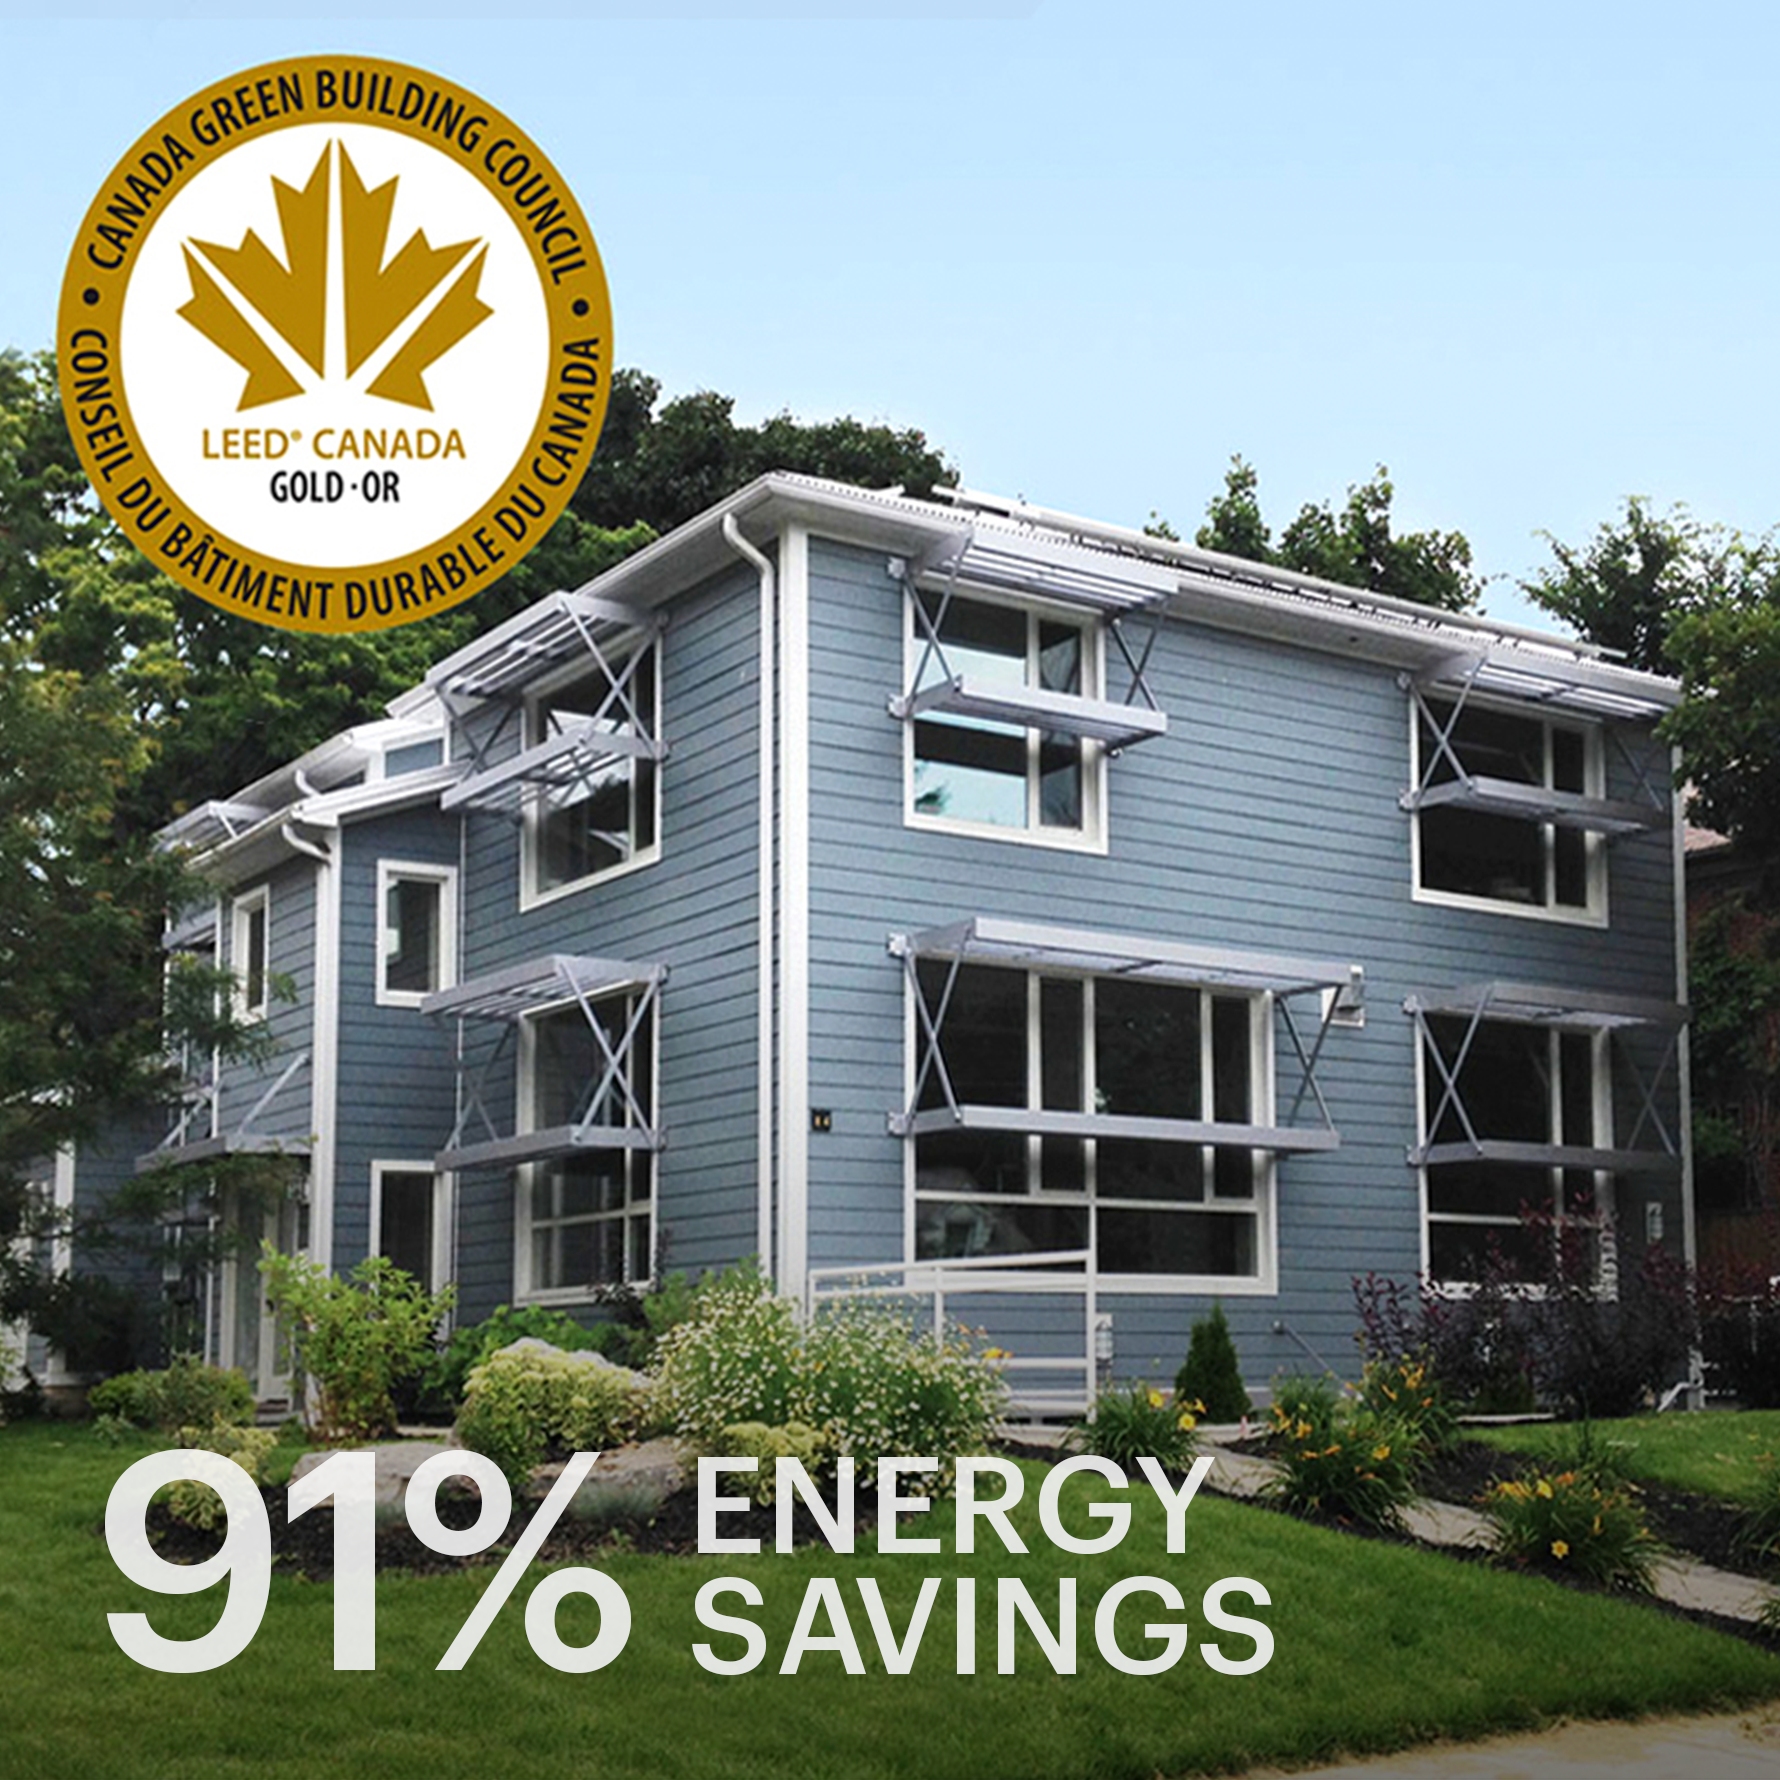 Willowdale Passive Solar House  LEED Gold Certification, CMHC Healthy Housing Award